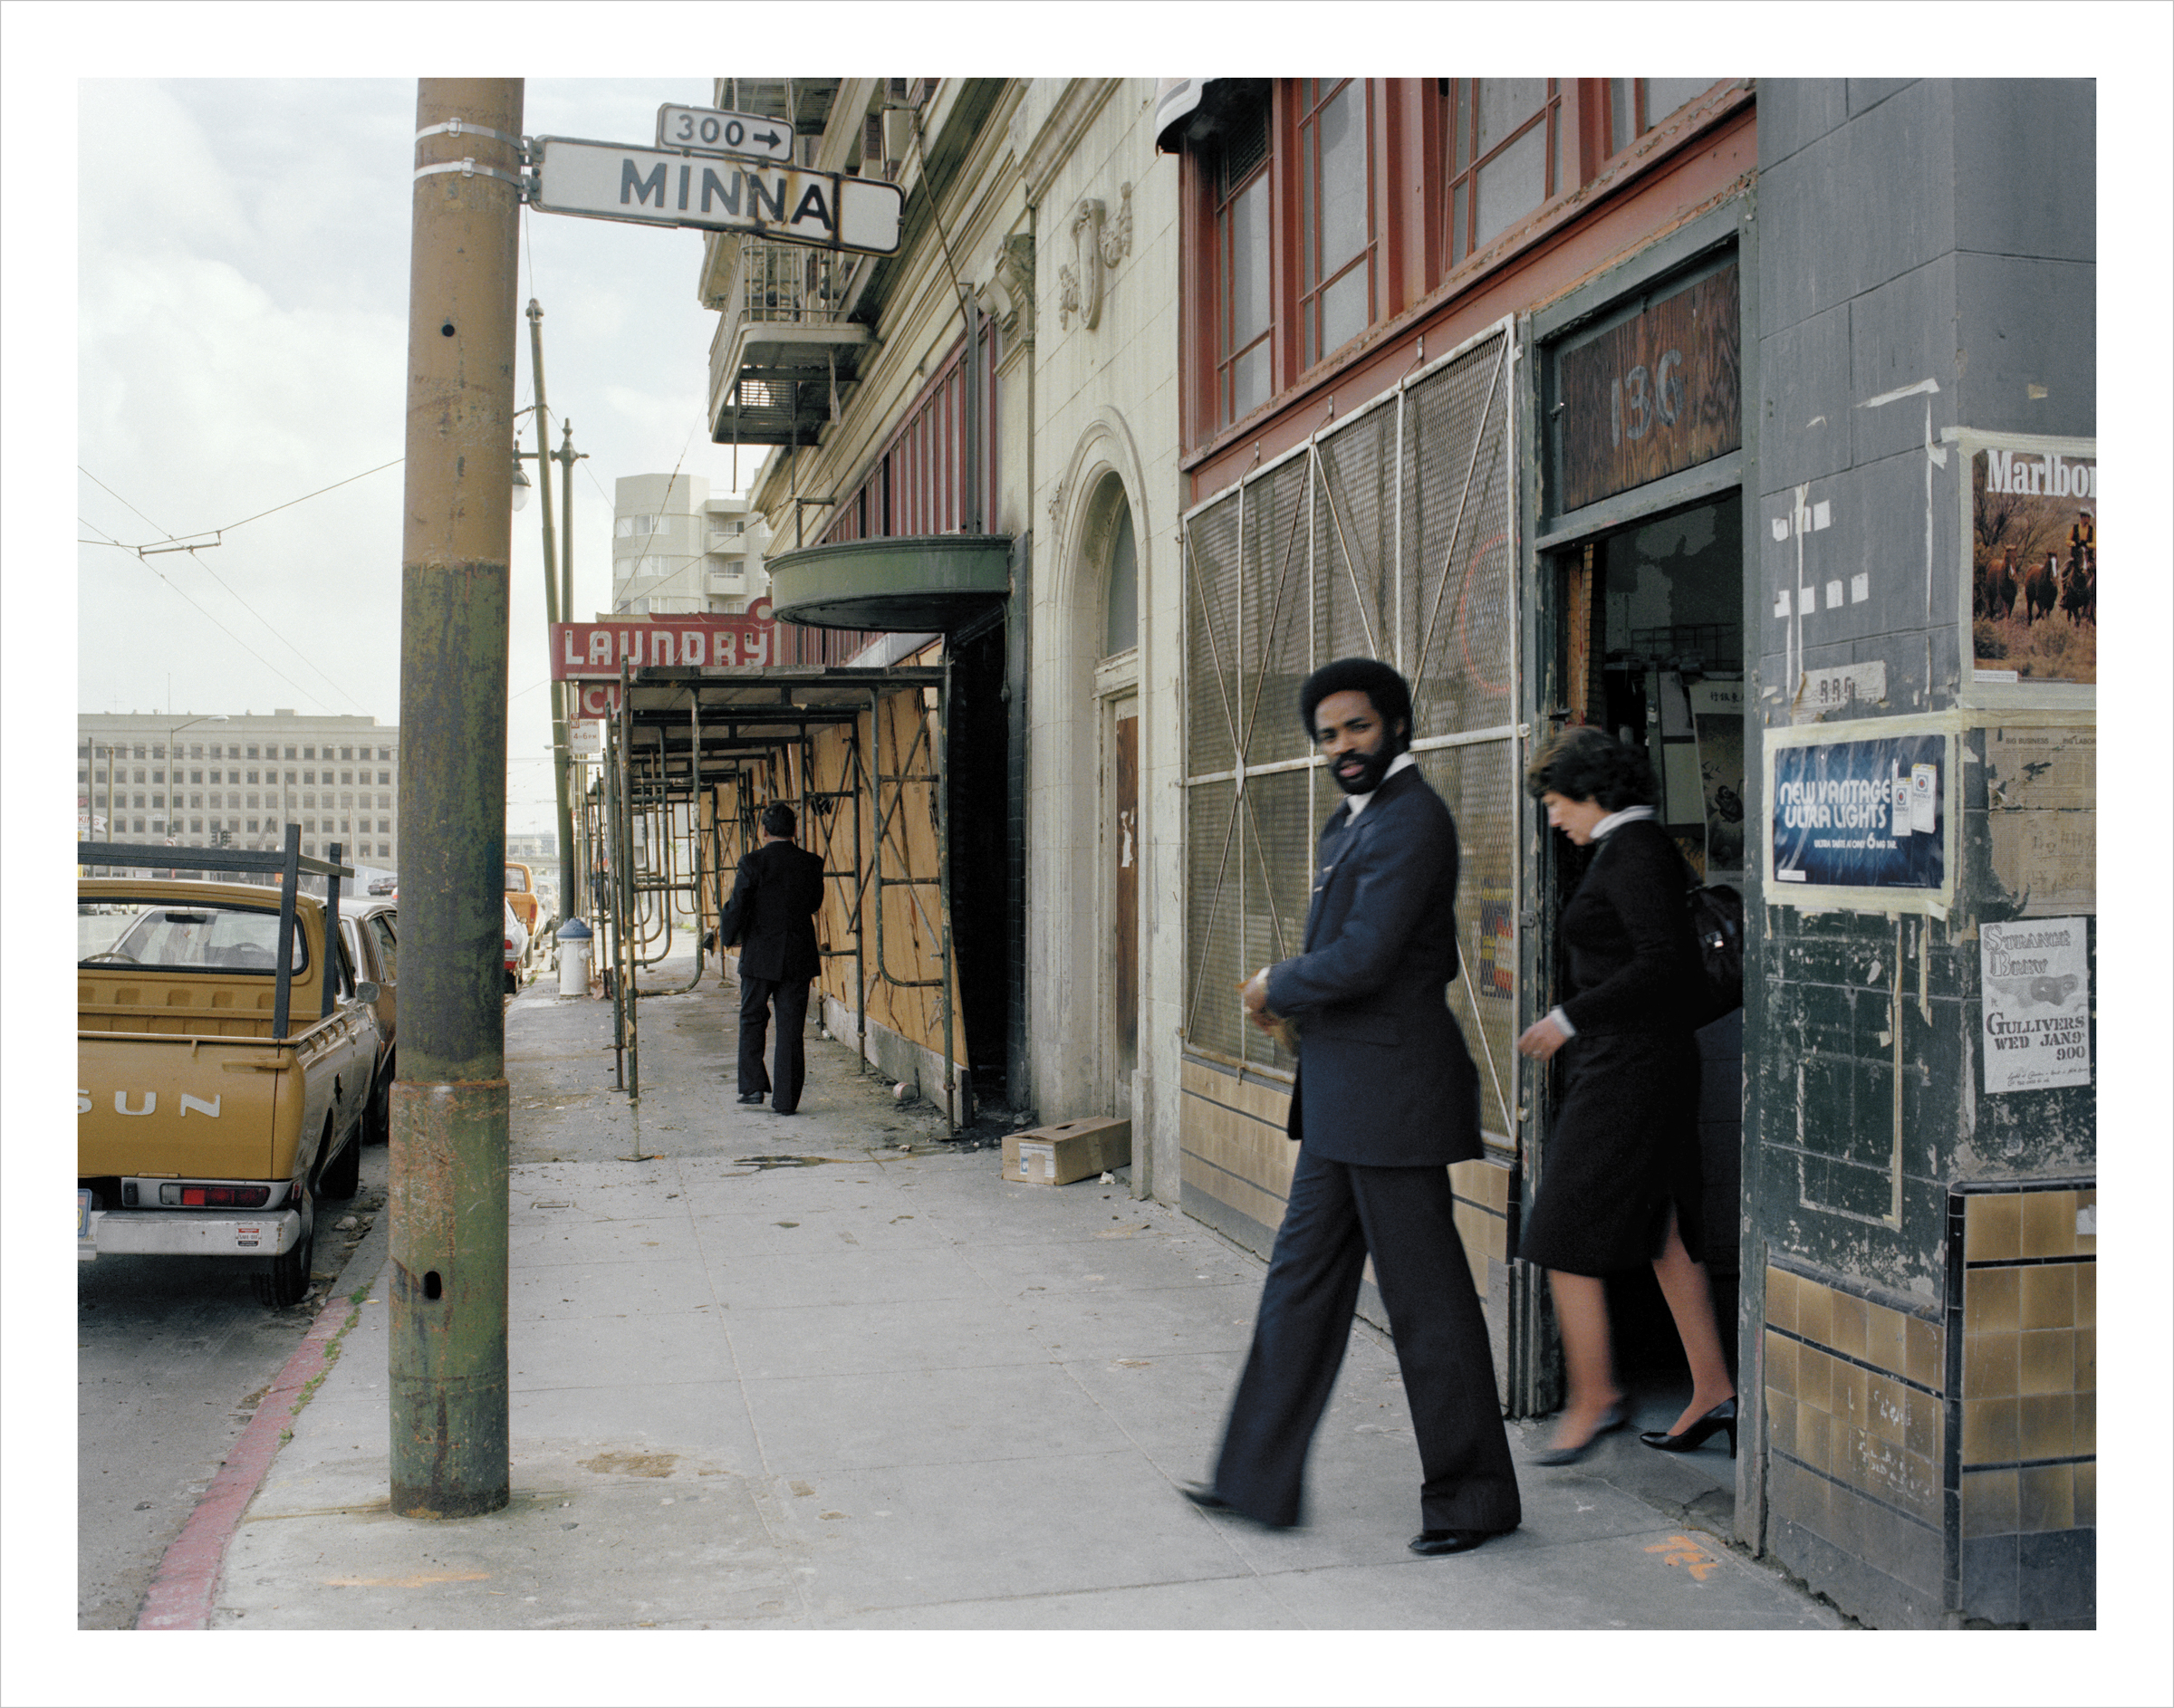 Office workers on lunch break near the site of the new convention center, 4th at Minna Street, 1979 Archival Pigment Print, 2016 16 x 20 inches, edition of 5 20 x 24 inches, edition of 2 30 x 40 inches, edition of 2